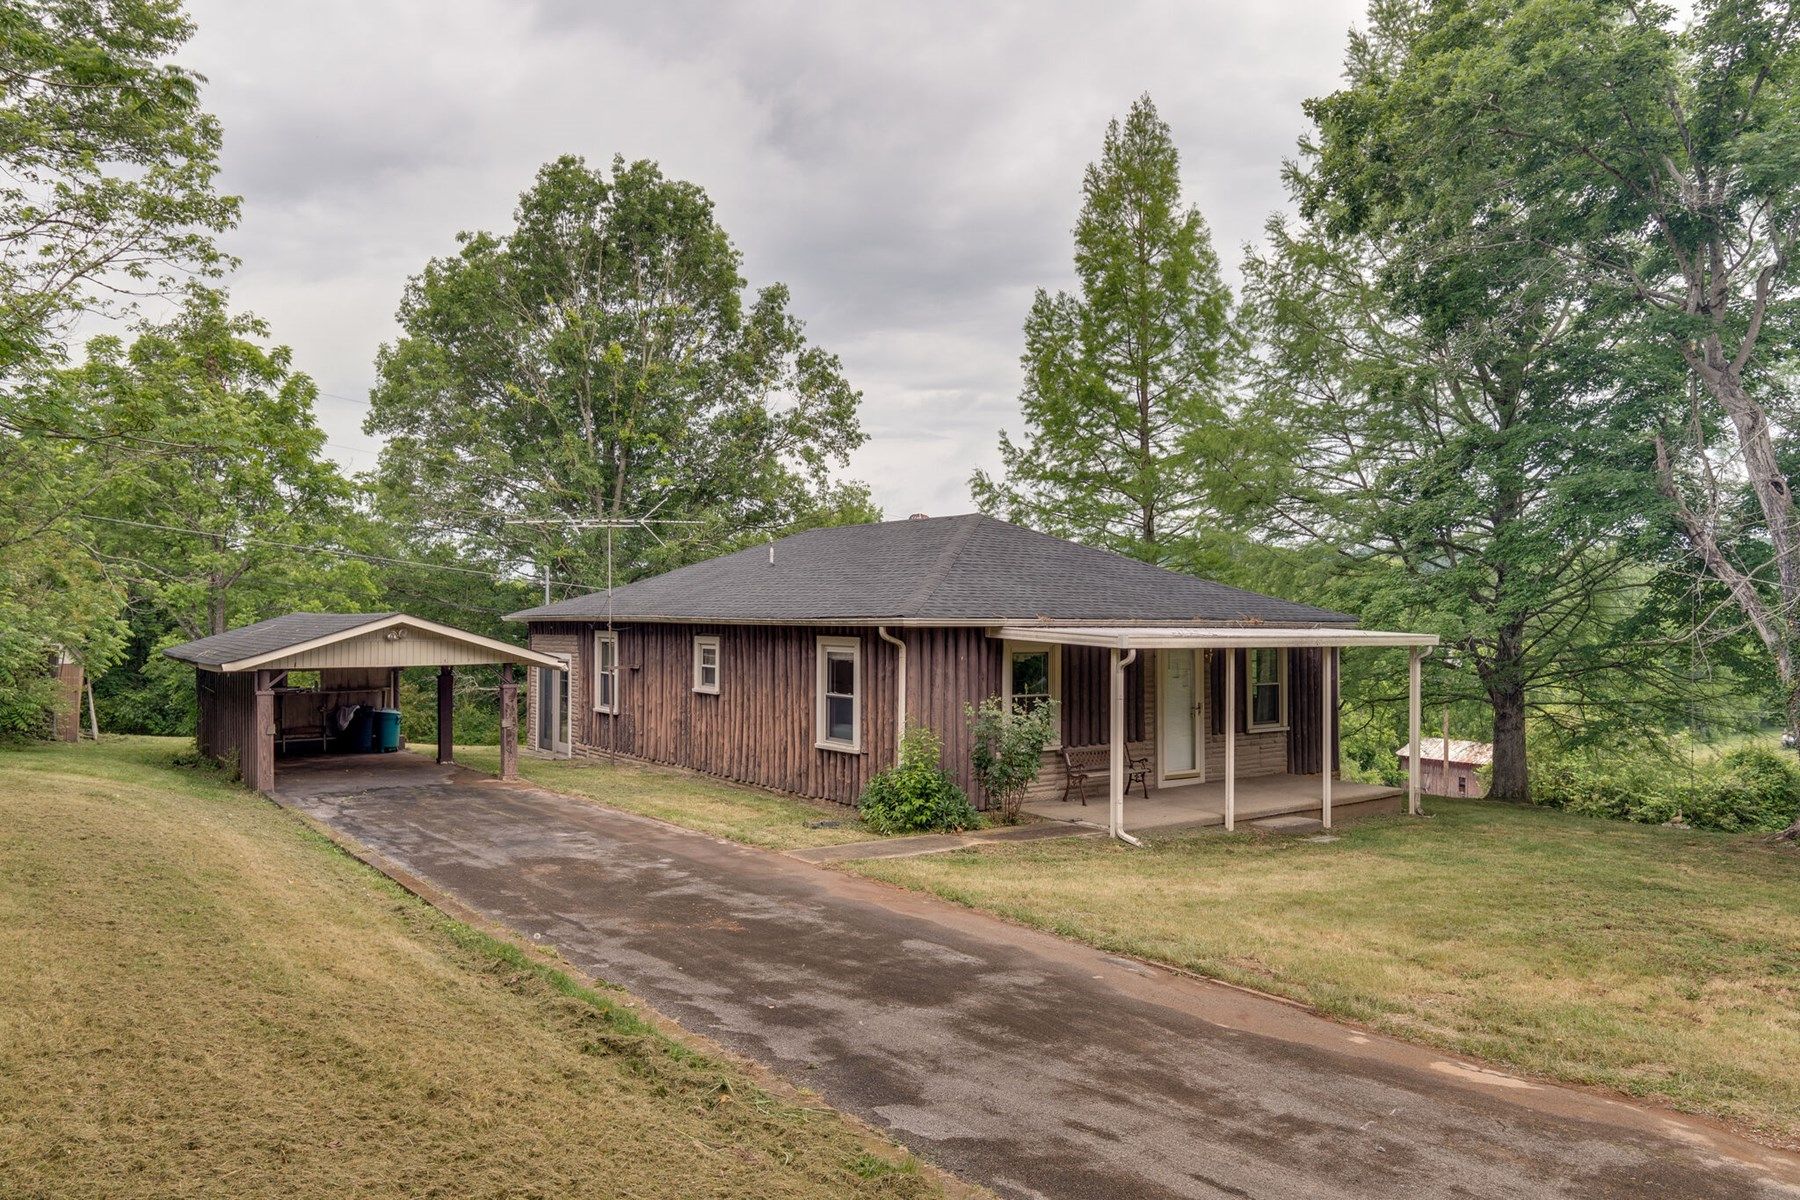 1-Story Country Home for Sale in Mt. Pleasant, Tennessee